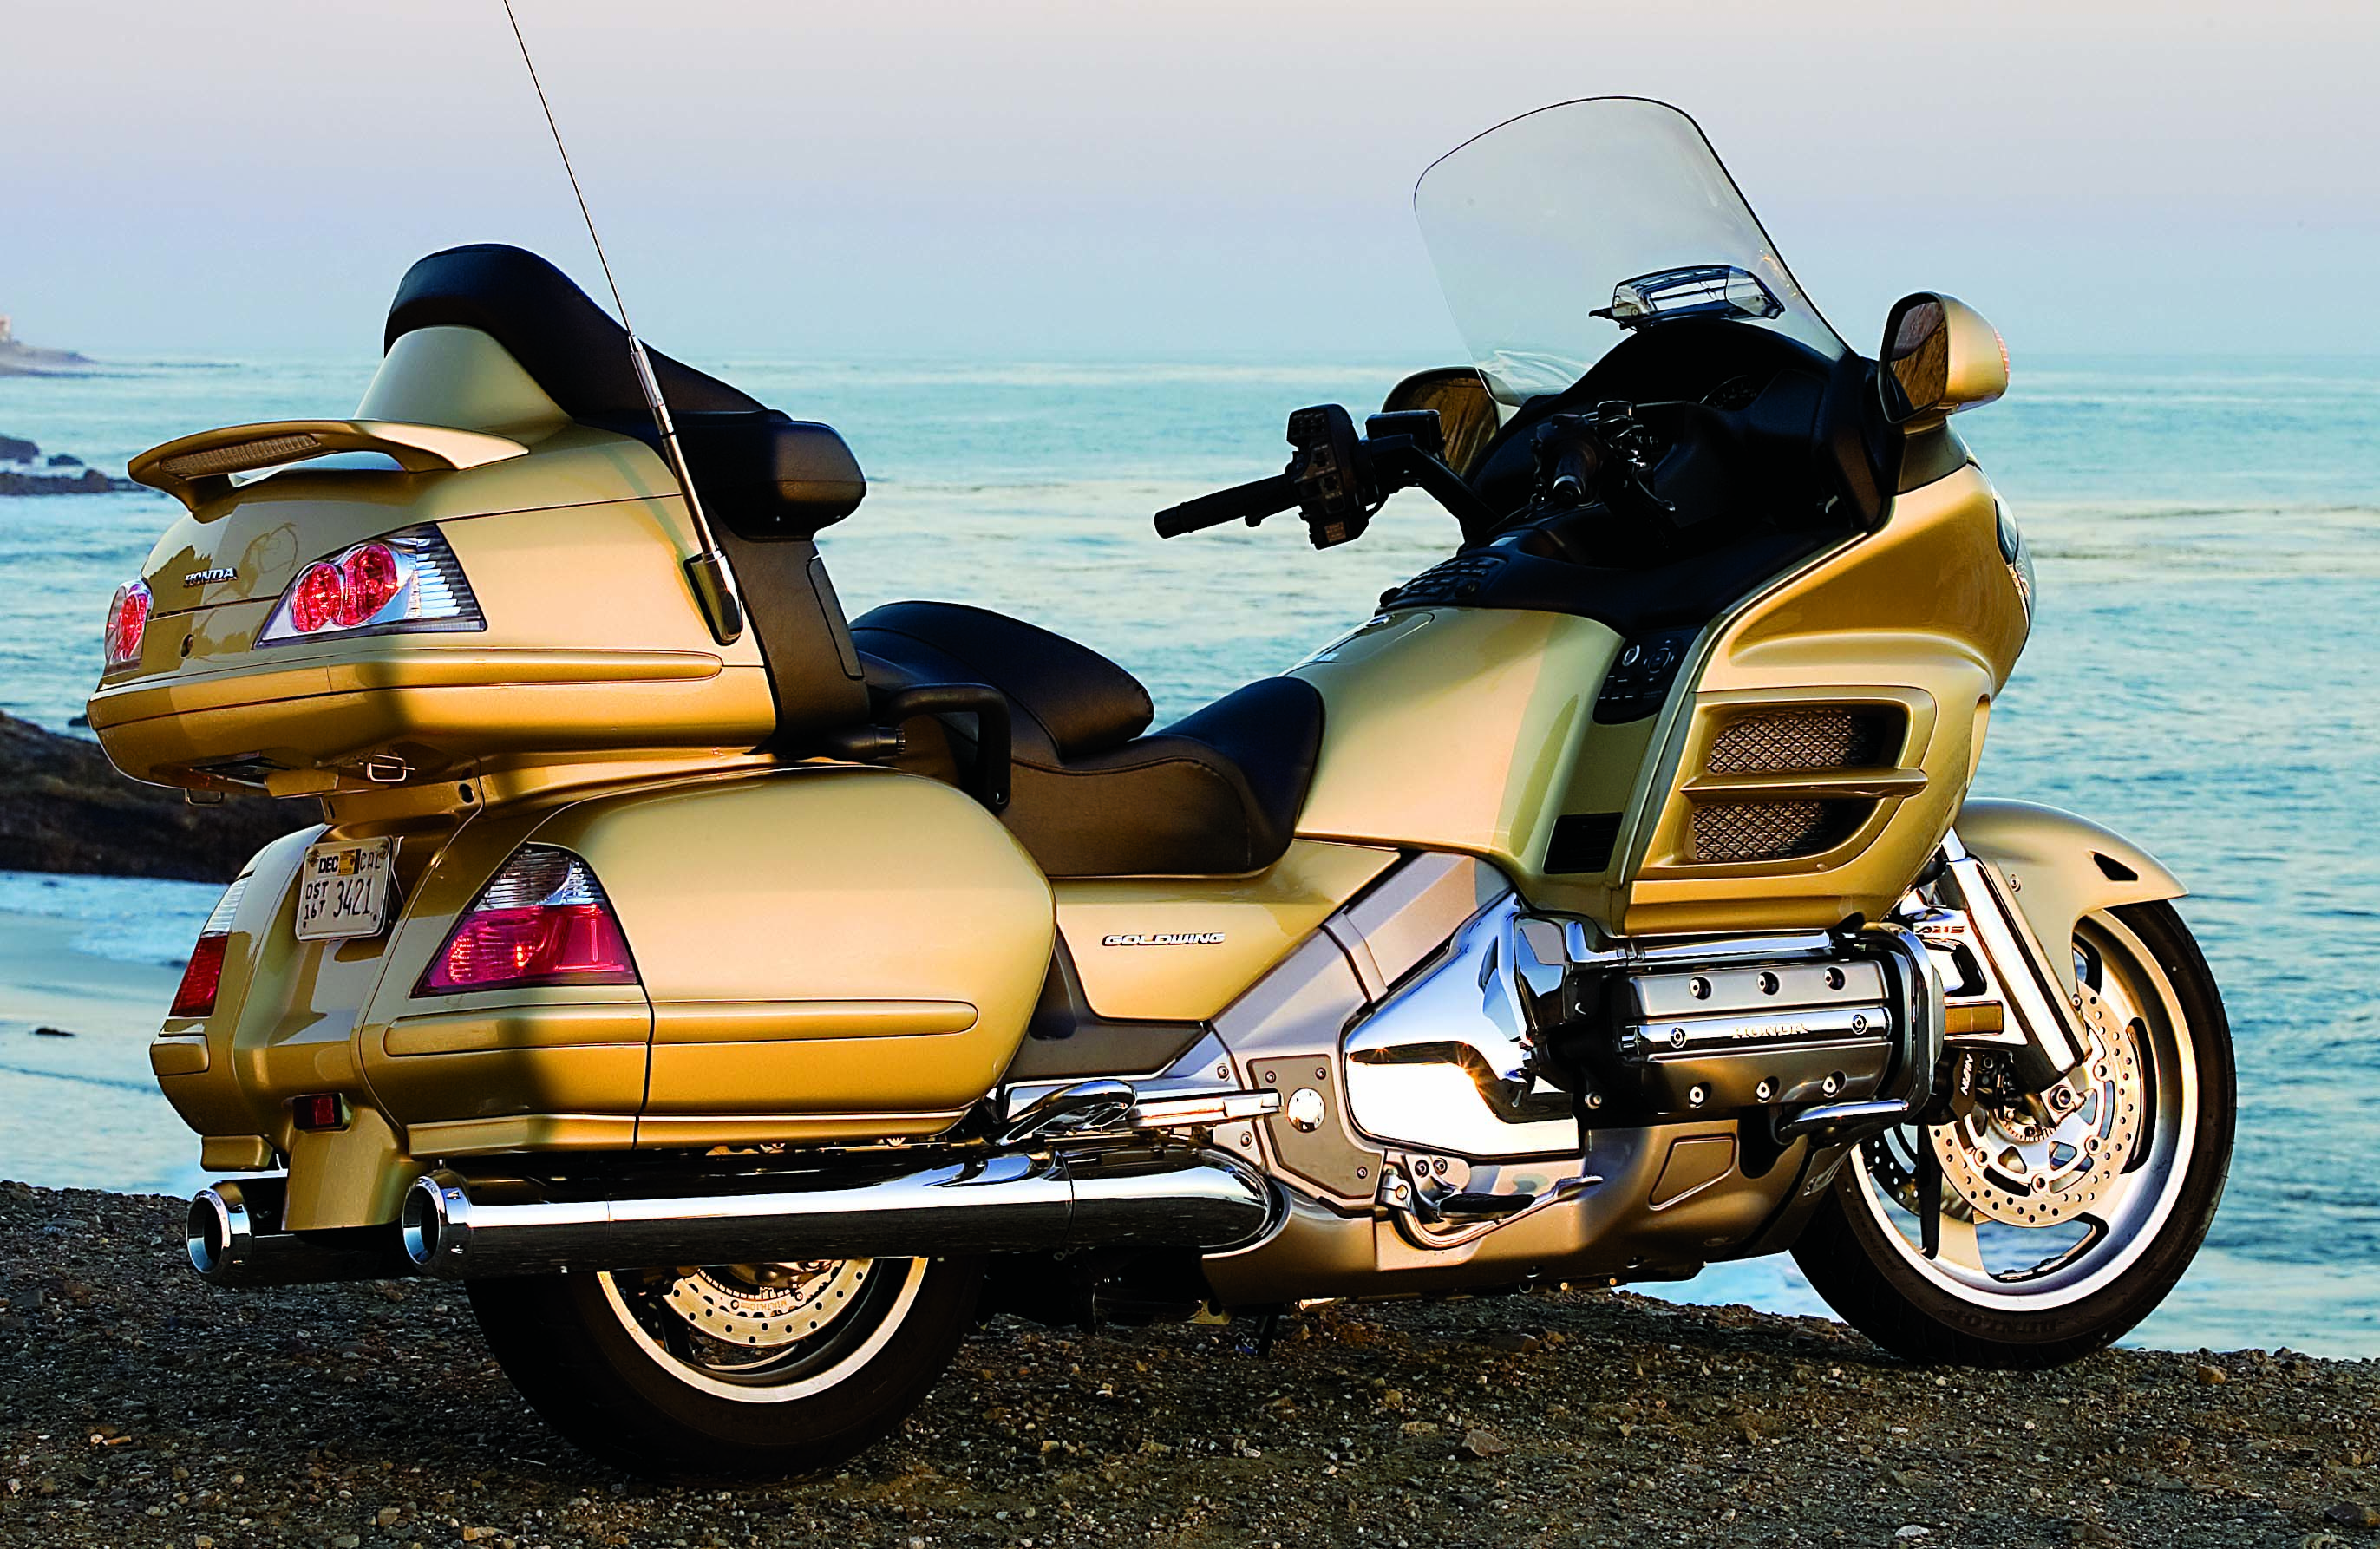 Honda GL 1800 Gold Wing images #82151